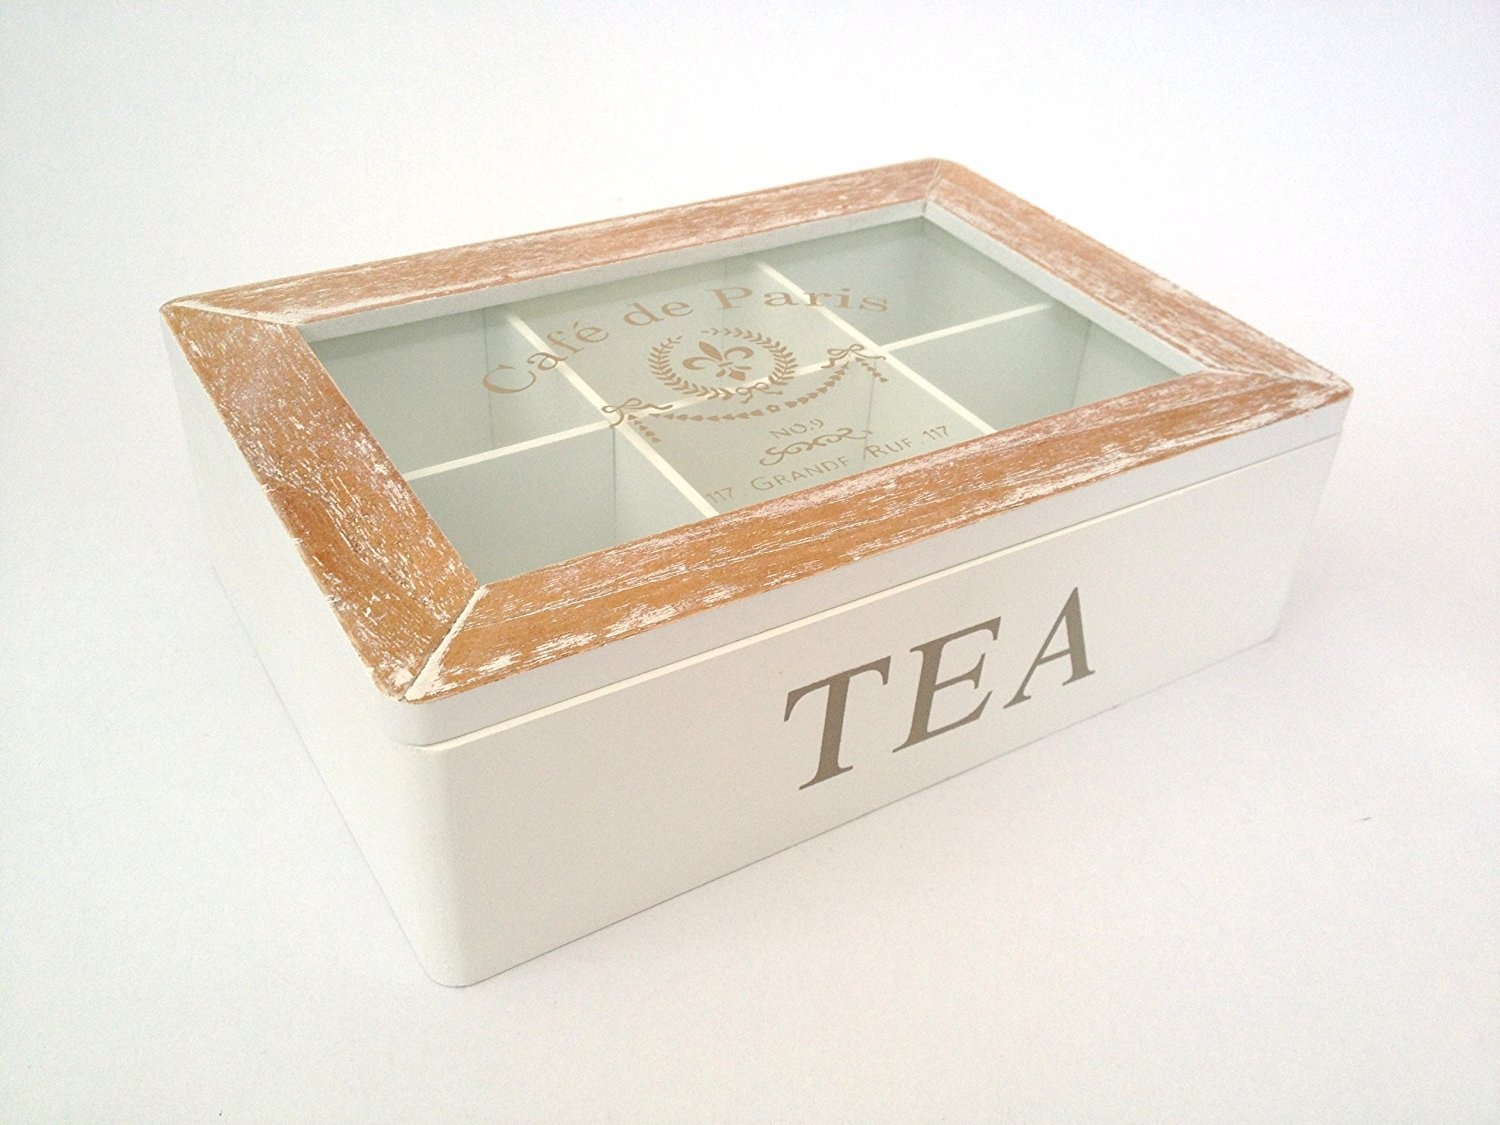 French Tea Box Storage 6 Six Compartments Wooden Distressed Vintage Style by Homes on Trend